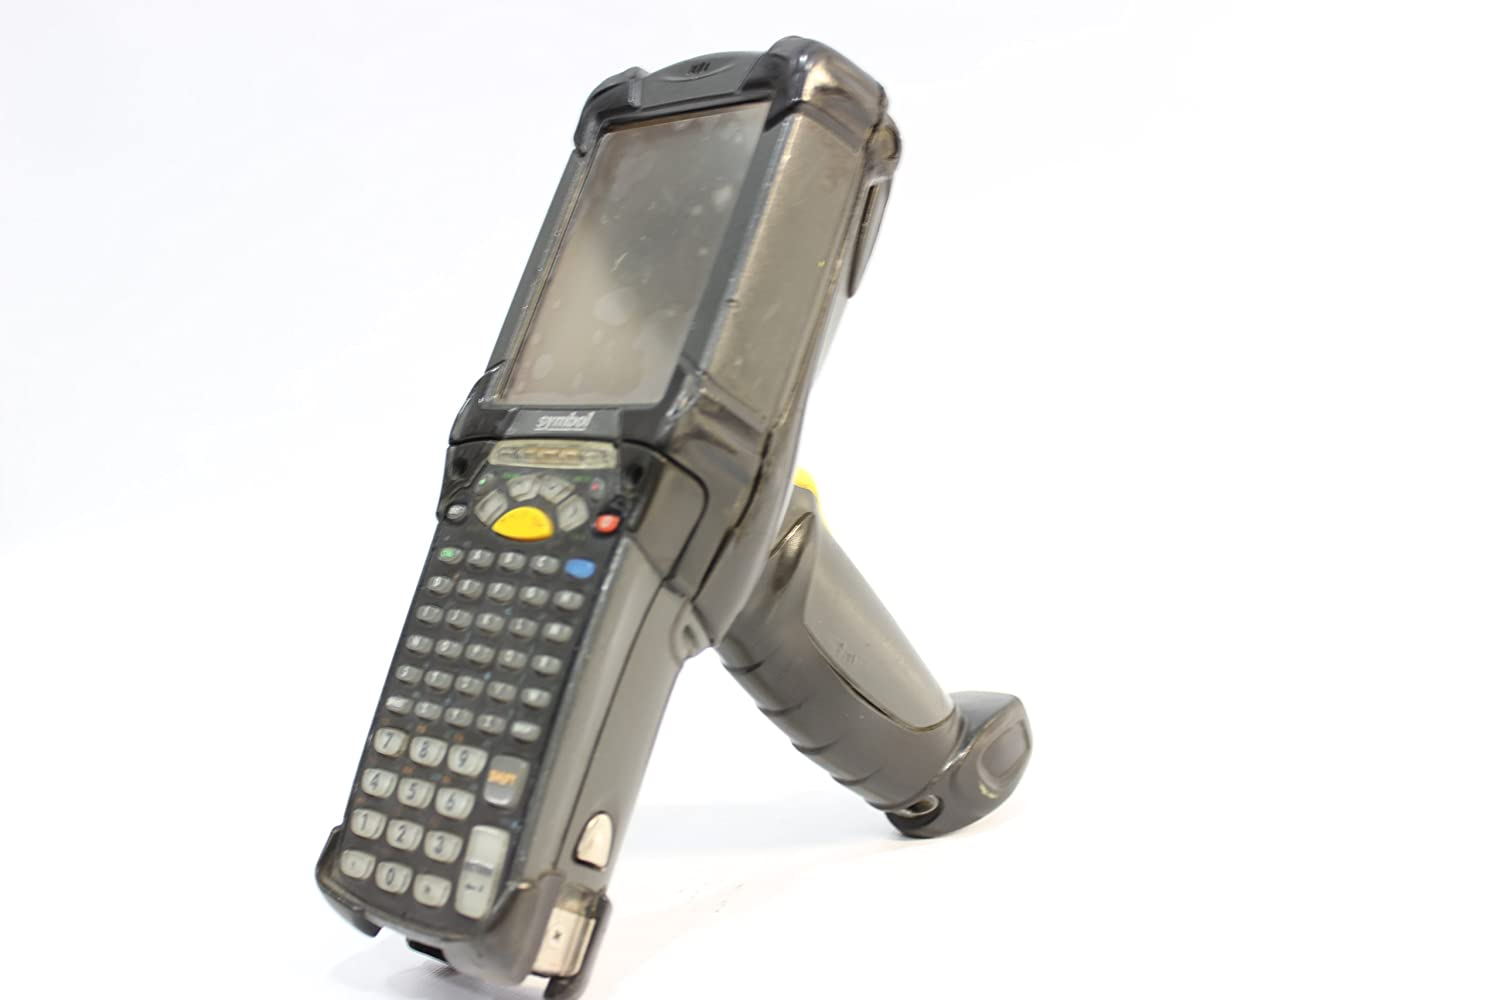 Amazon Motorola Symbol Mc9090 G Handheld Barcode Reader Bar